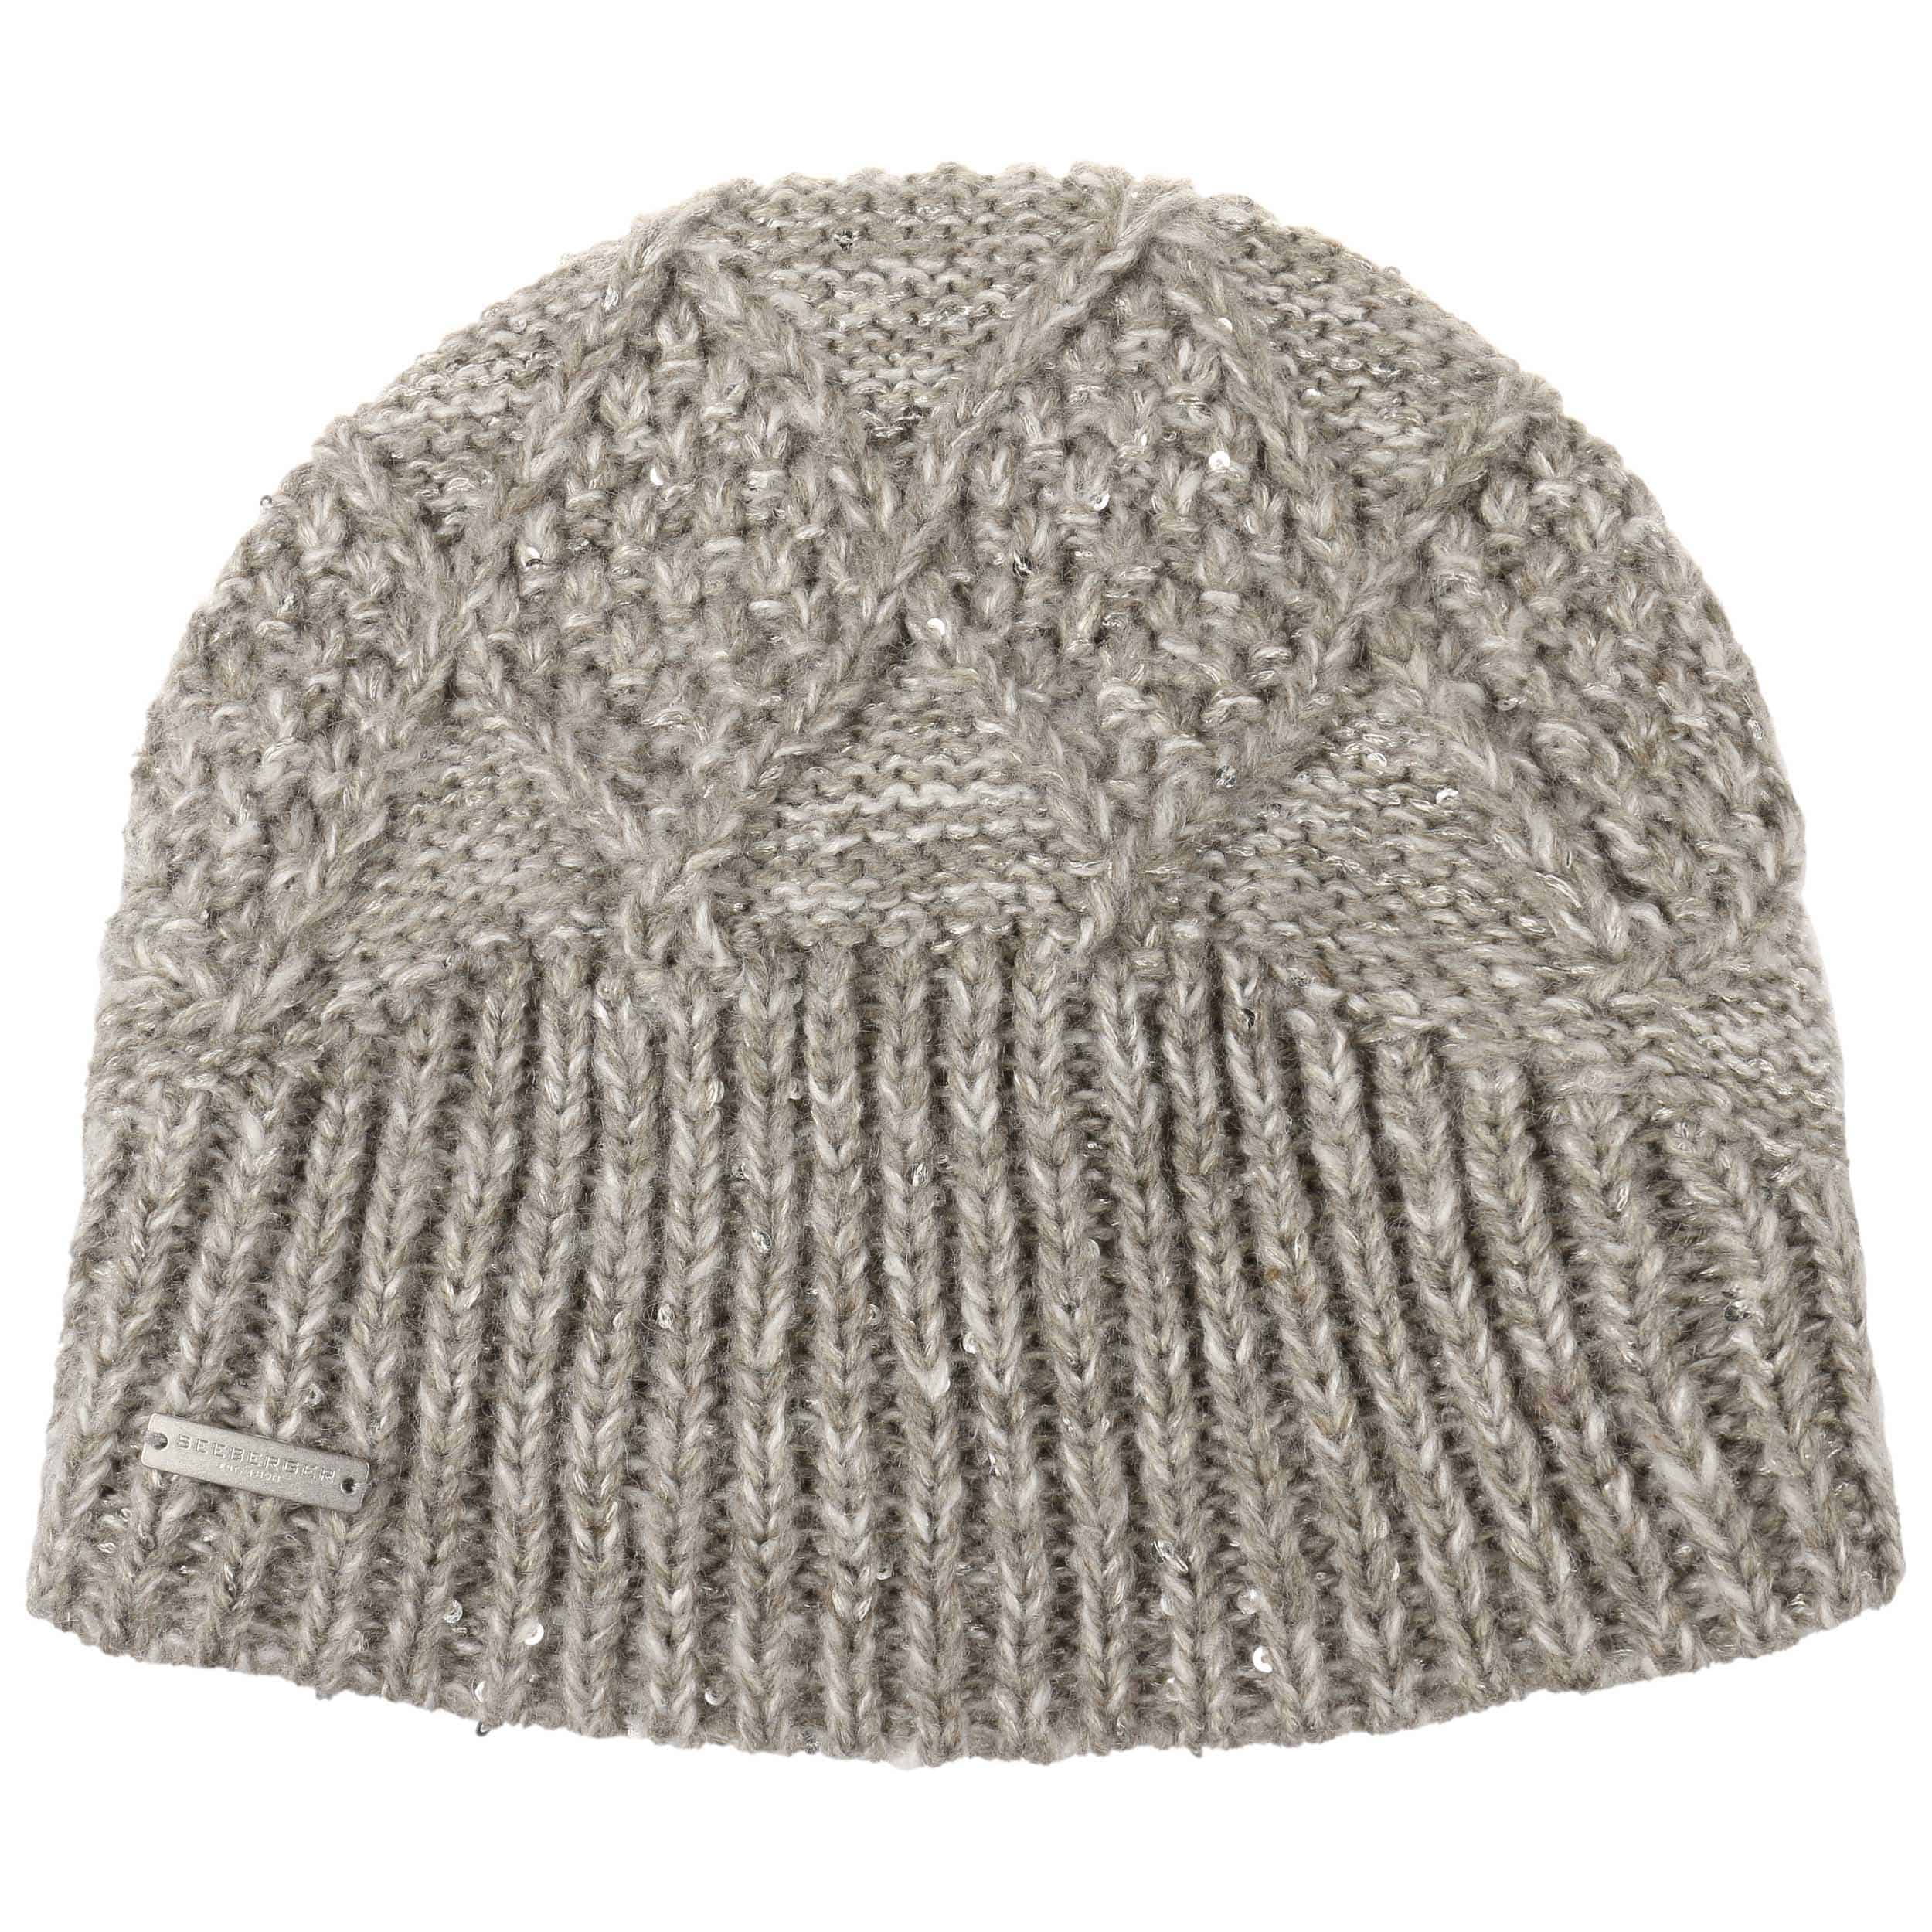 ... Cable Knit Pattern Beanie Hat by Seeberger - oatmeal 1 ... cbe44106507